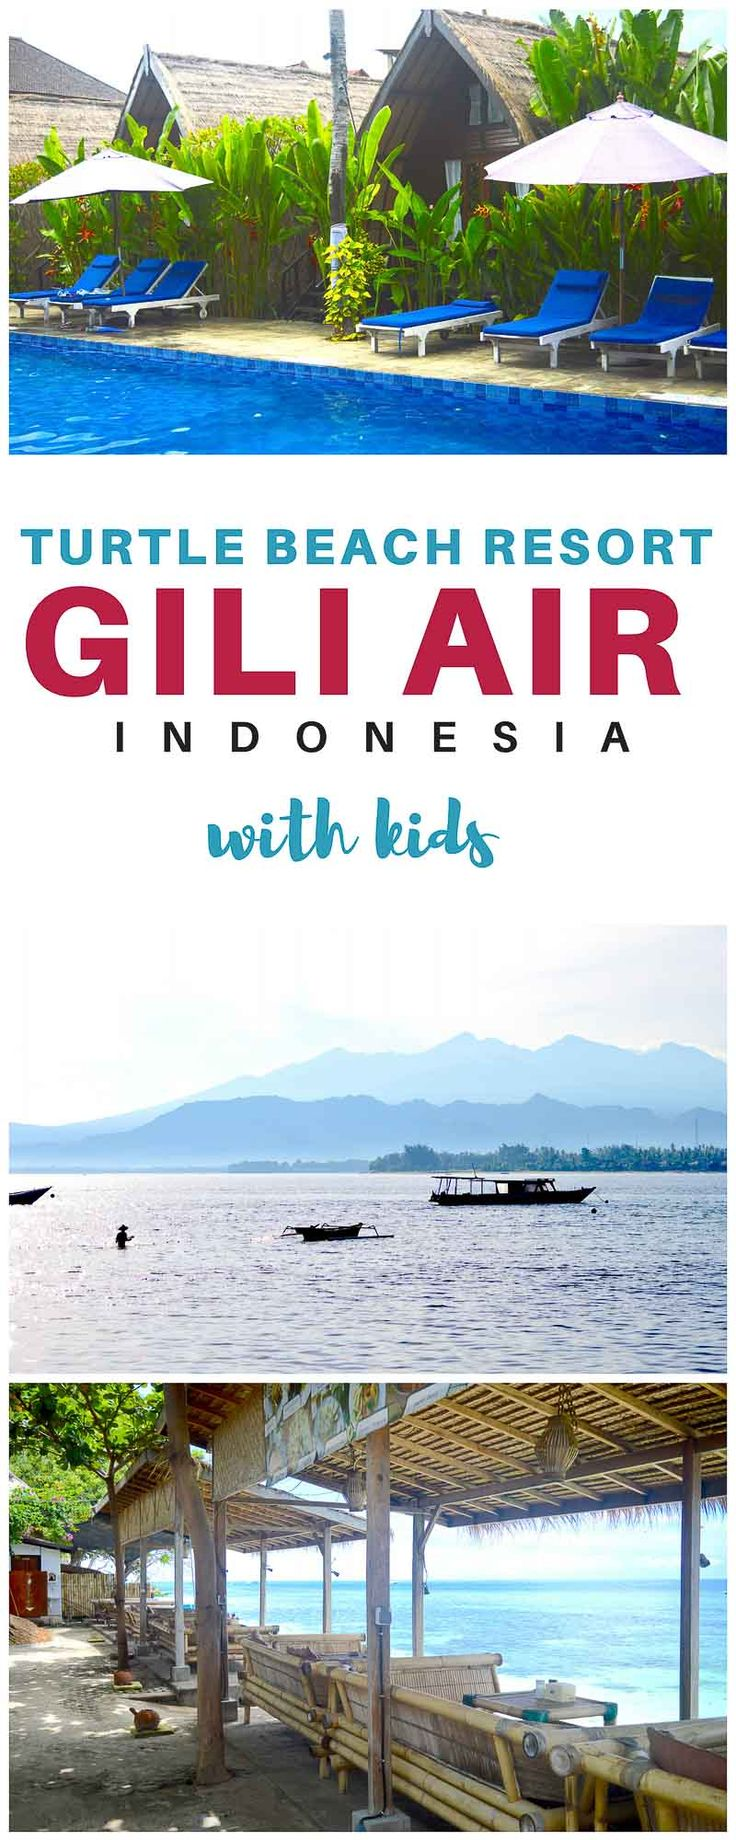 Gili Air with Kids | Things to do in Gili Air | Where to Stay in Gili Air | Gili Islands | Getting to the Gili Islands | Gili Air Resorts